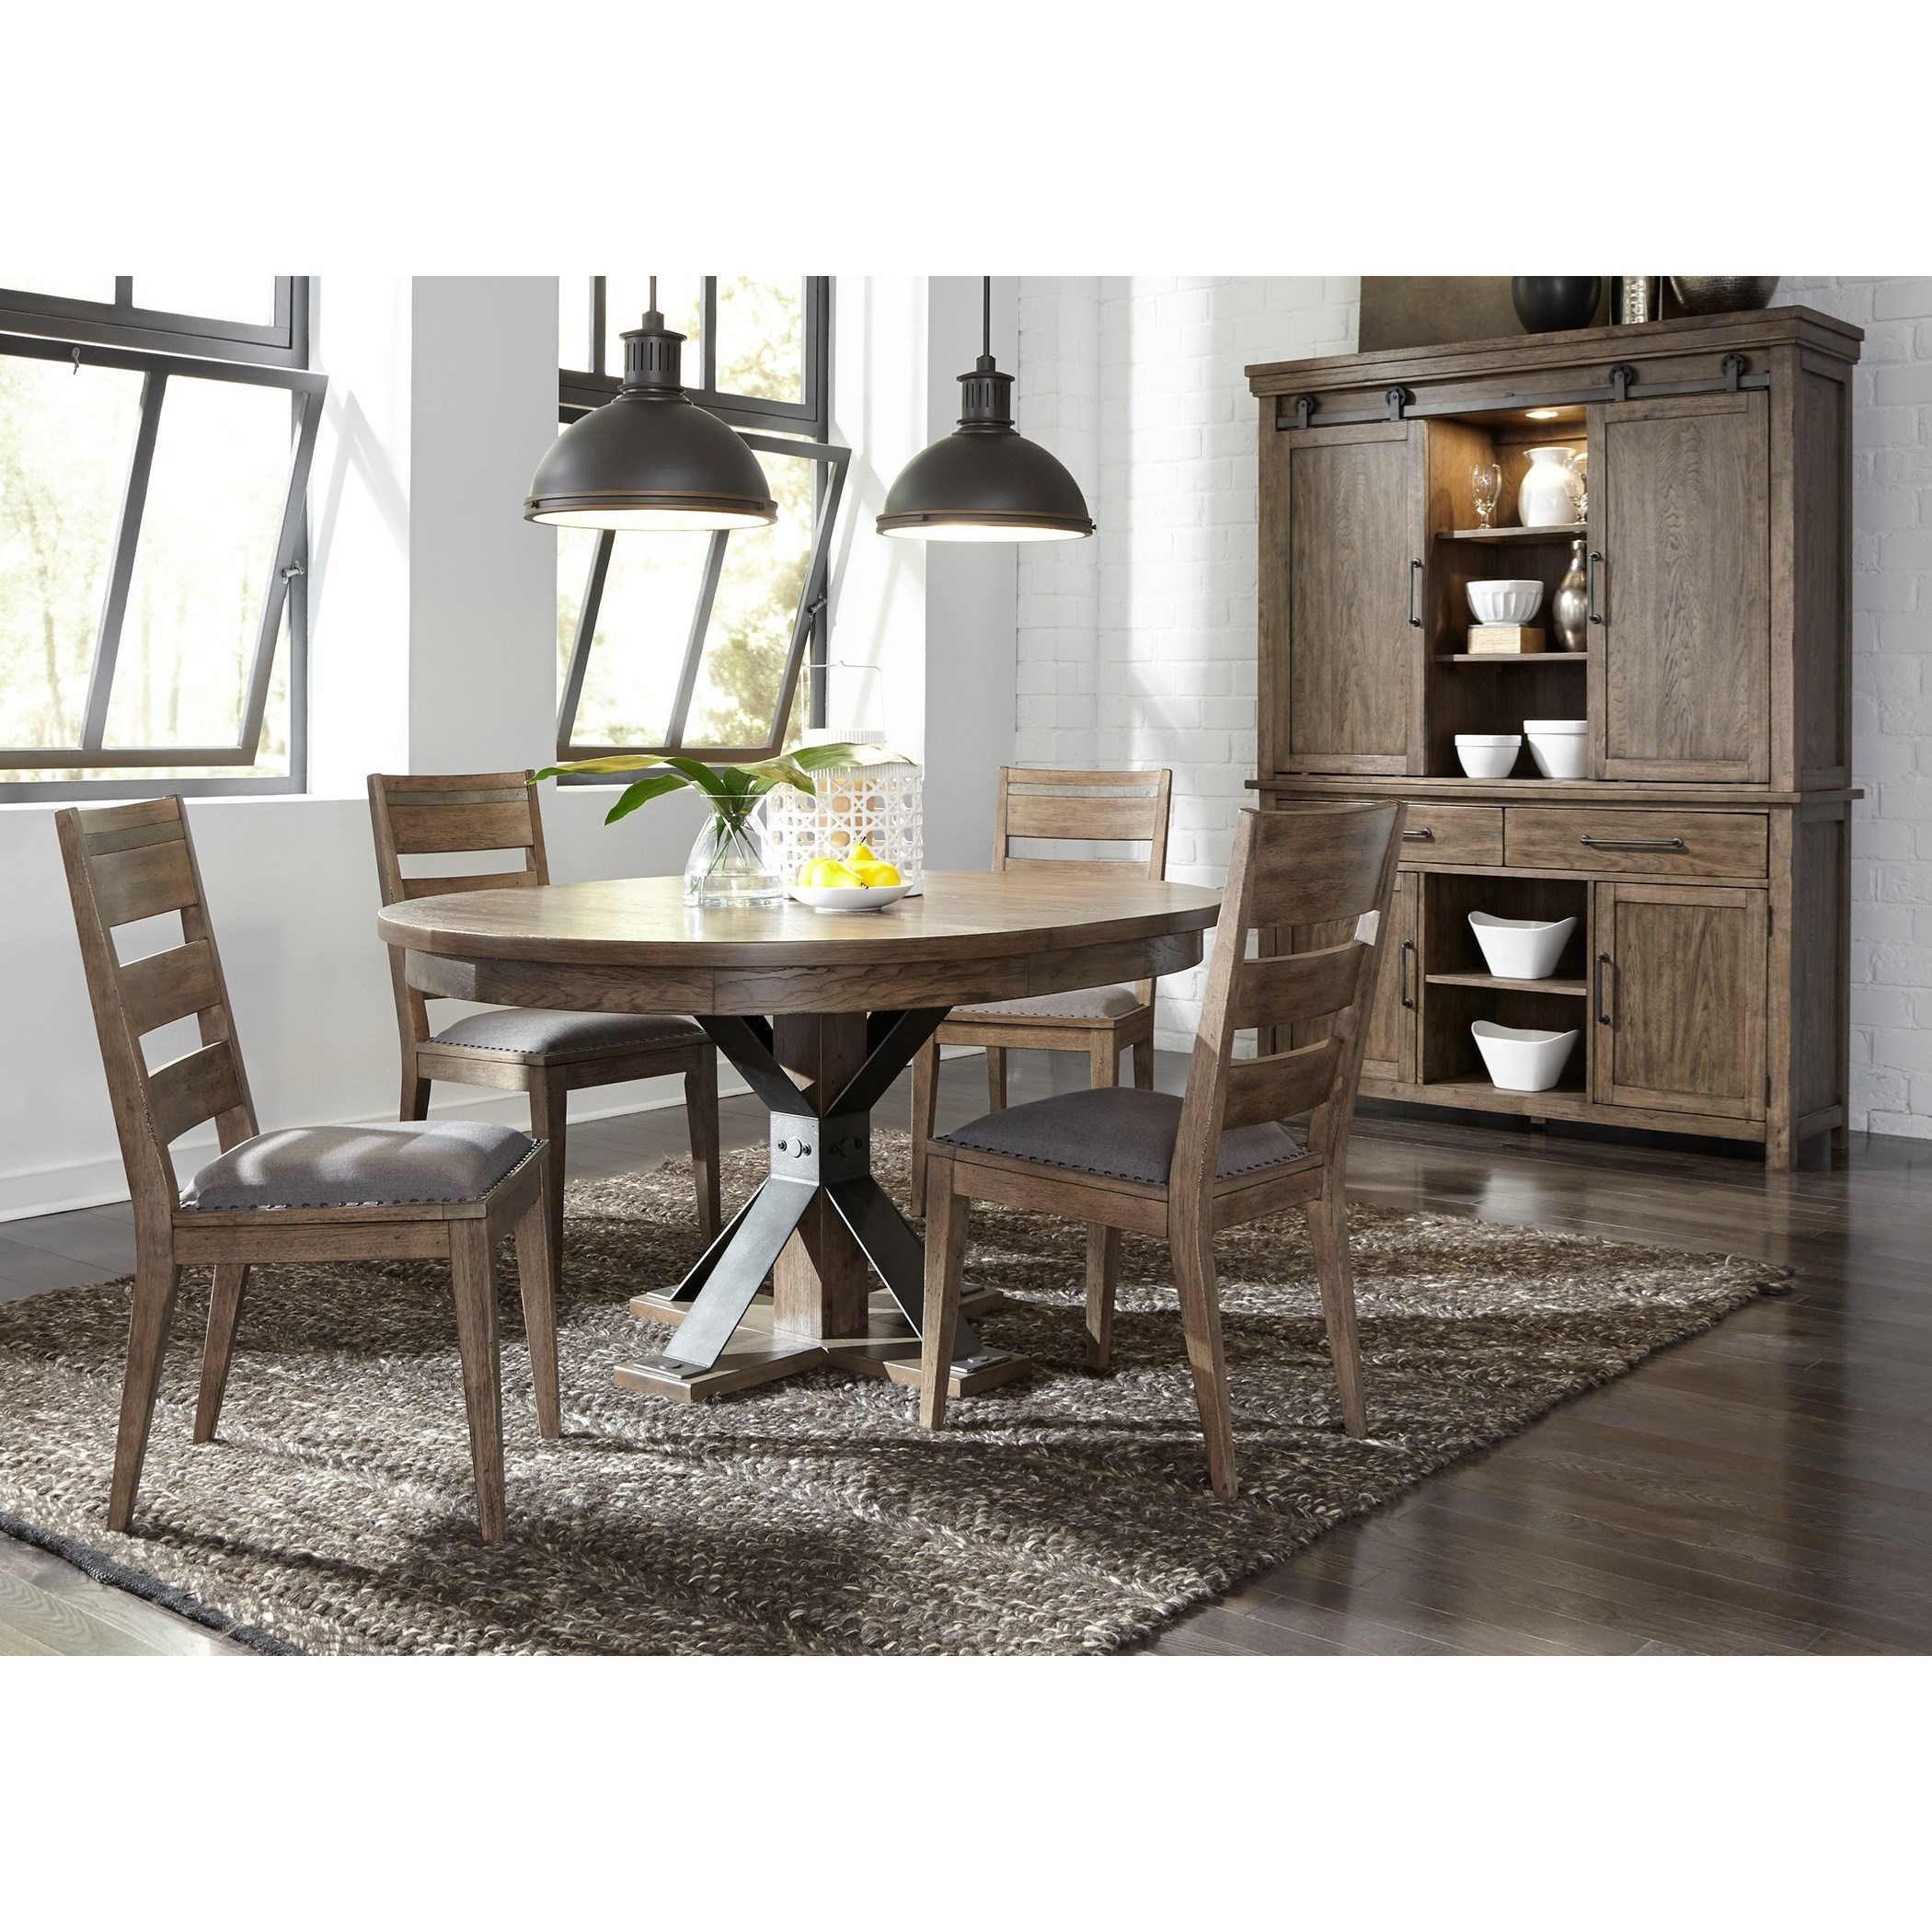 Sonoma Road Casual Dining Room Group by Liberty Furniture at Northeast Factory Direct